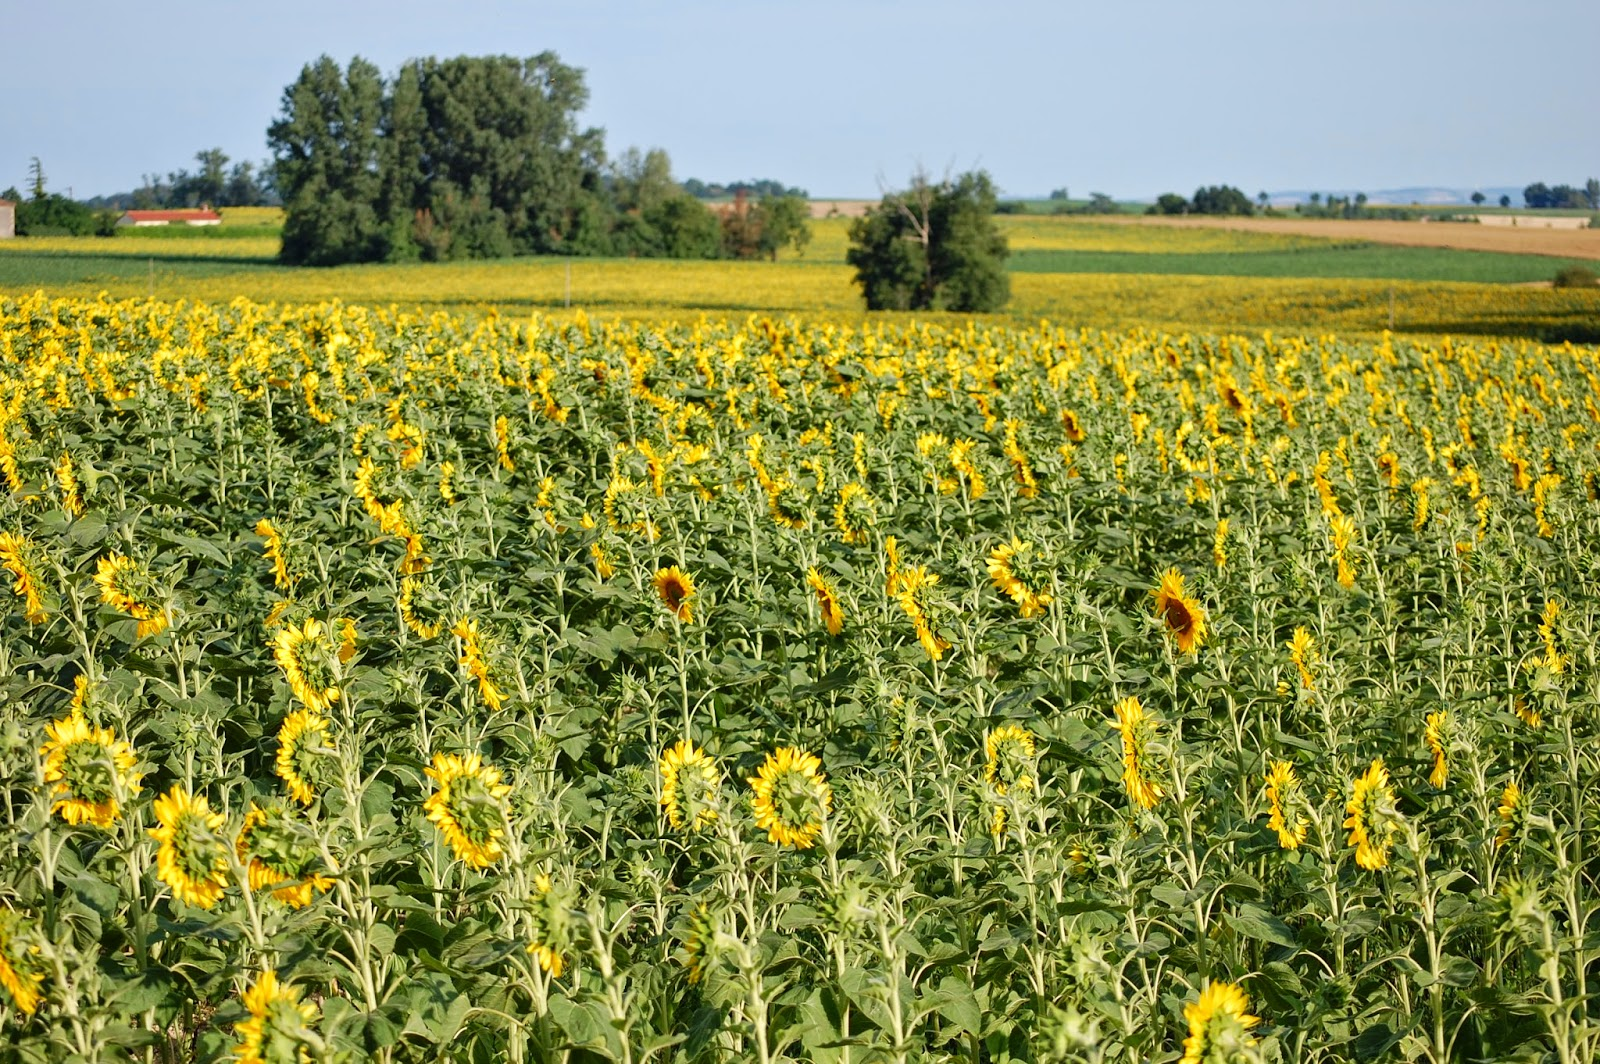 Sunflowers at the end of our road in Gascony